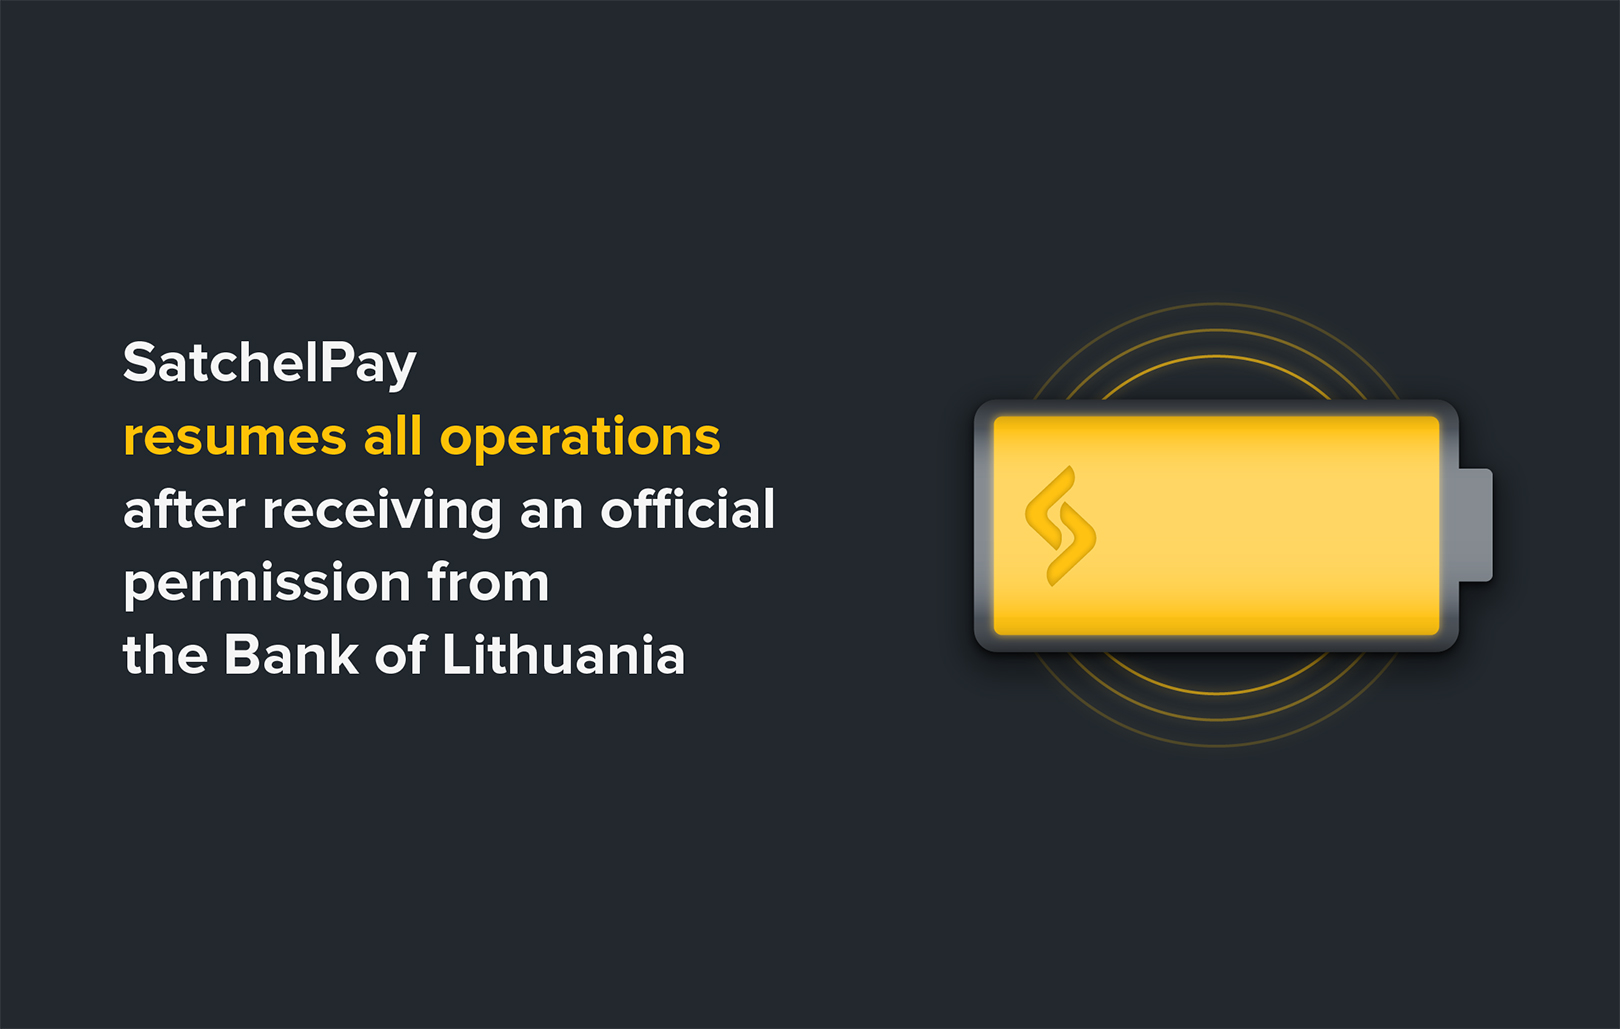 SatchelPay resumes all operations after receiving an official permission from the Bank of Lithuania